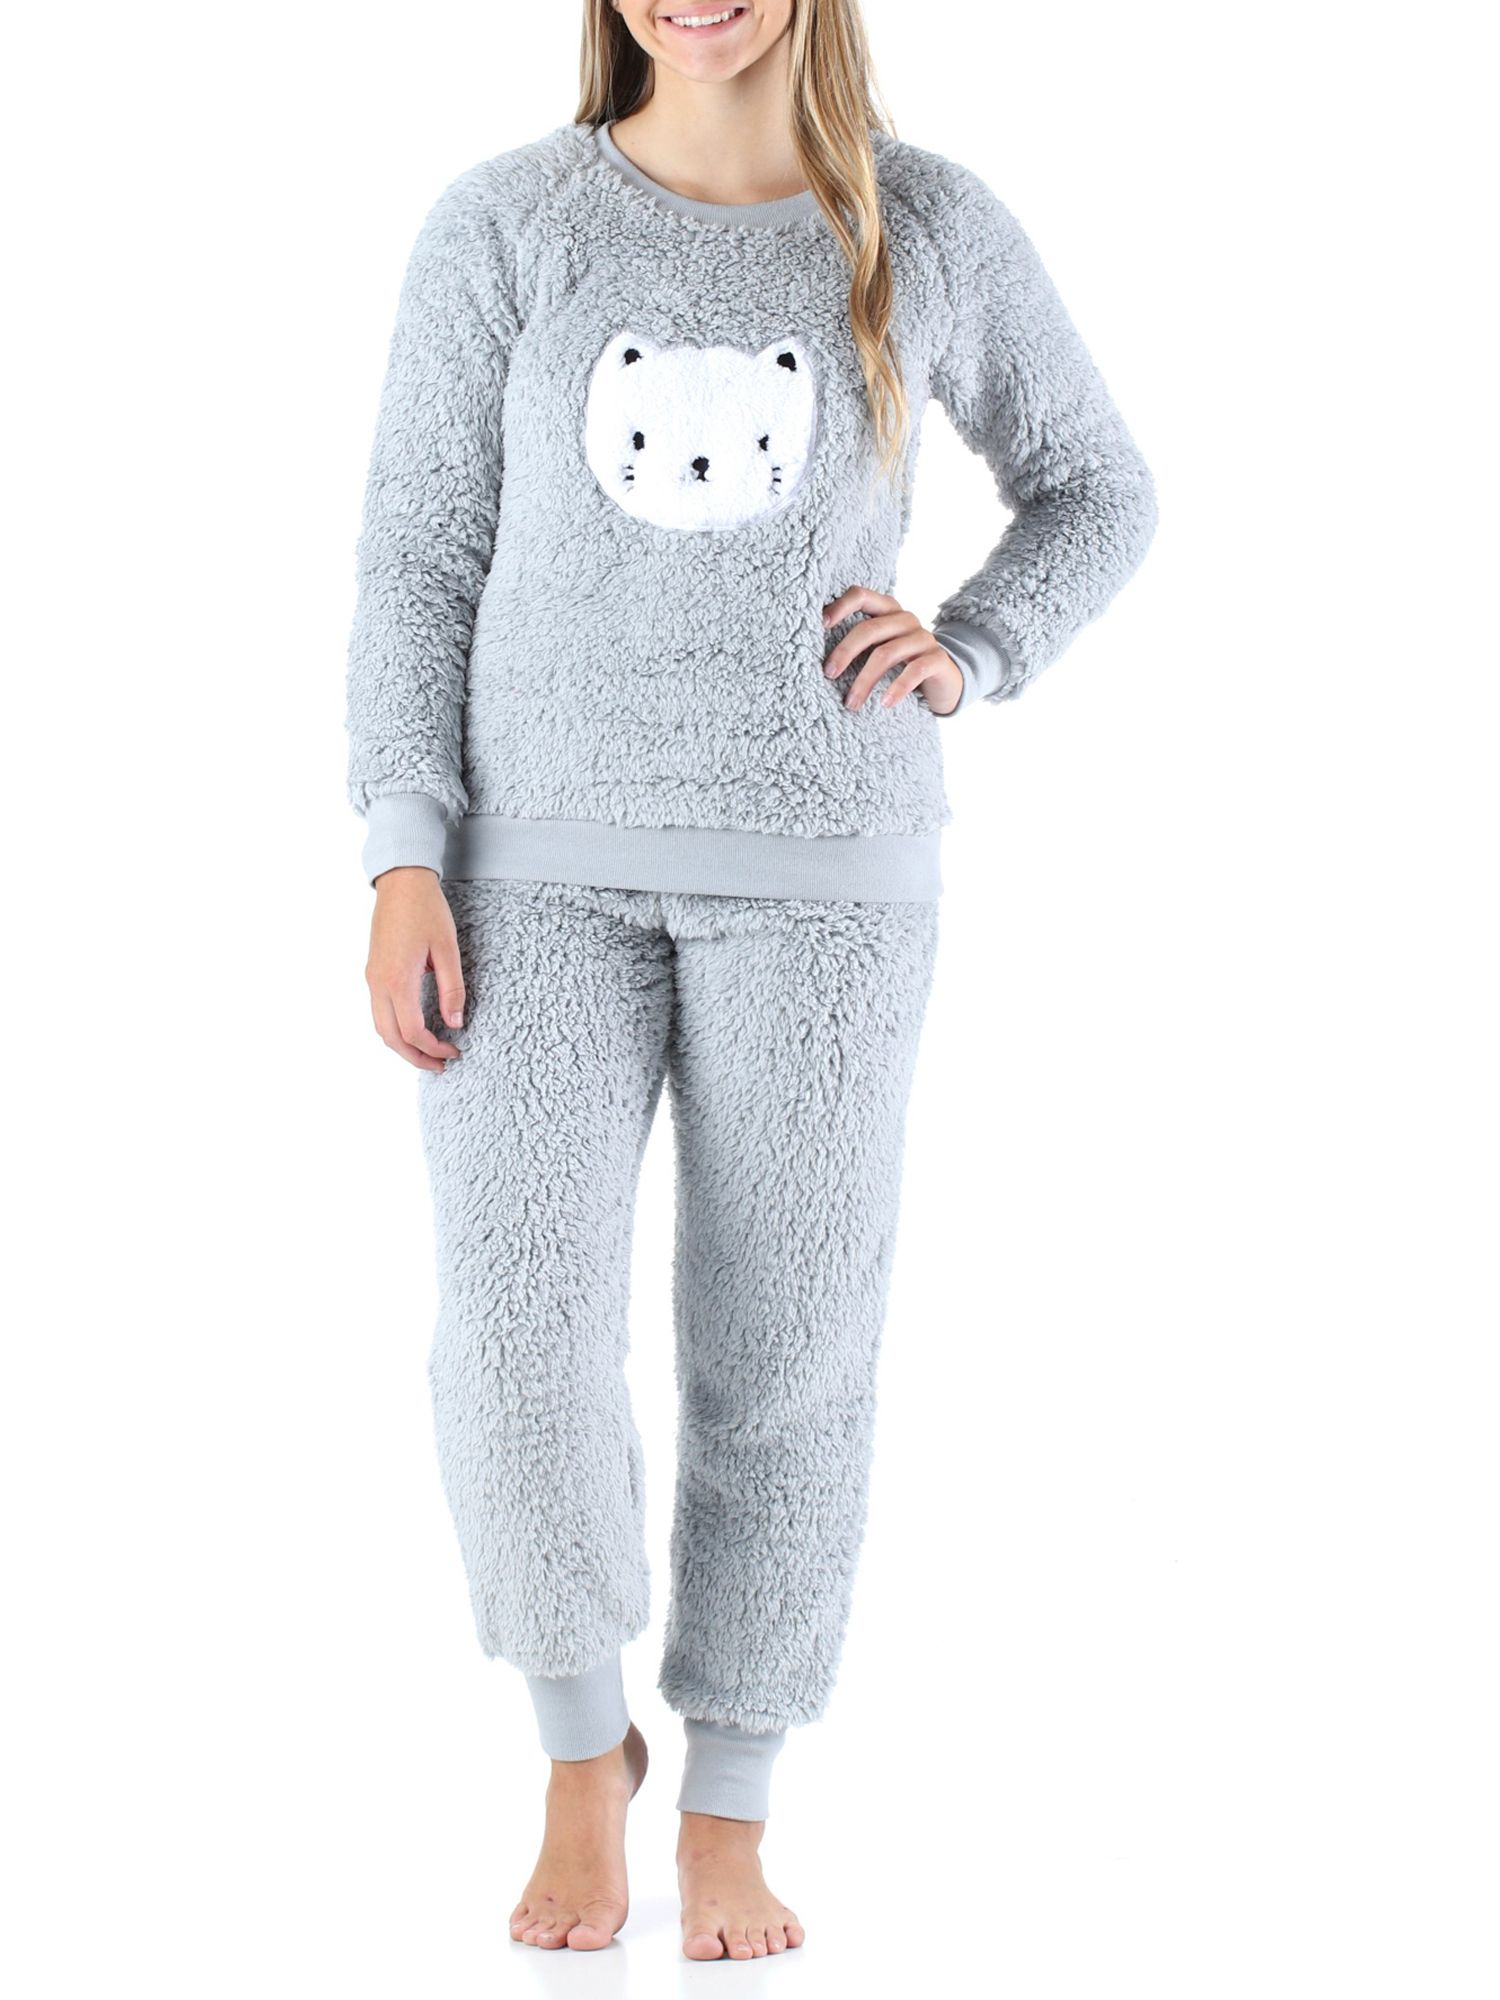 The Best Pajamas from Walmart and Amazon - Cute ded3fd7c5